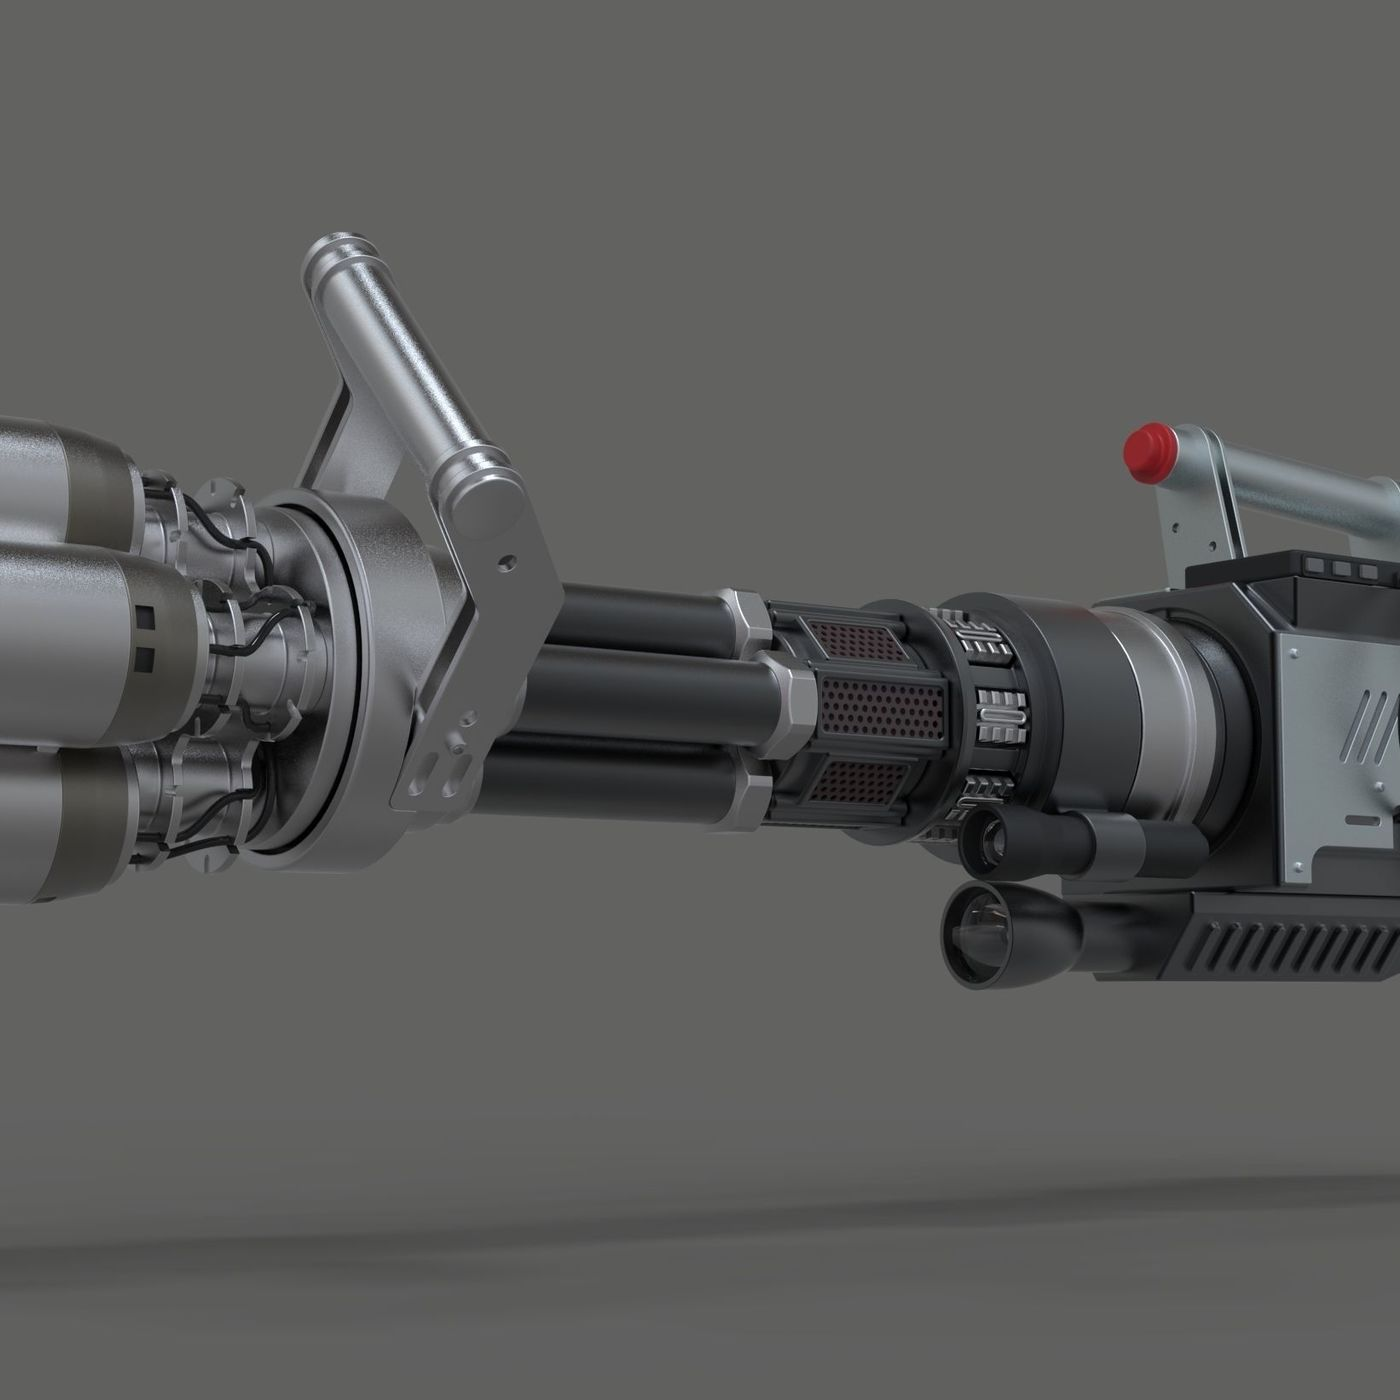 Light cannon from Pixels